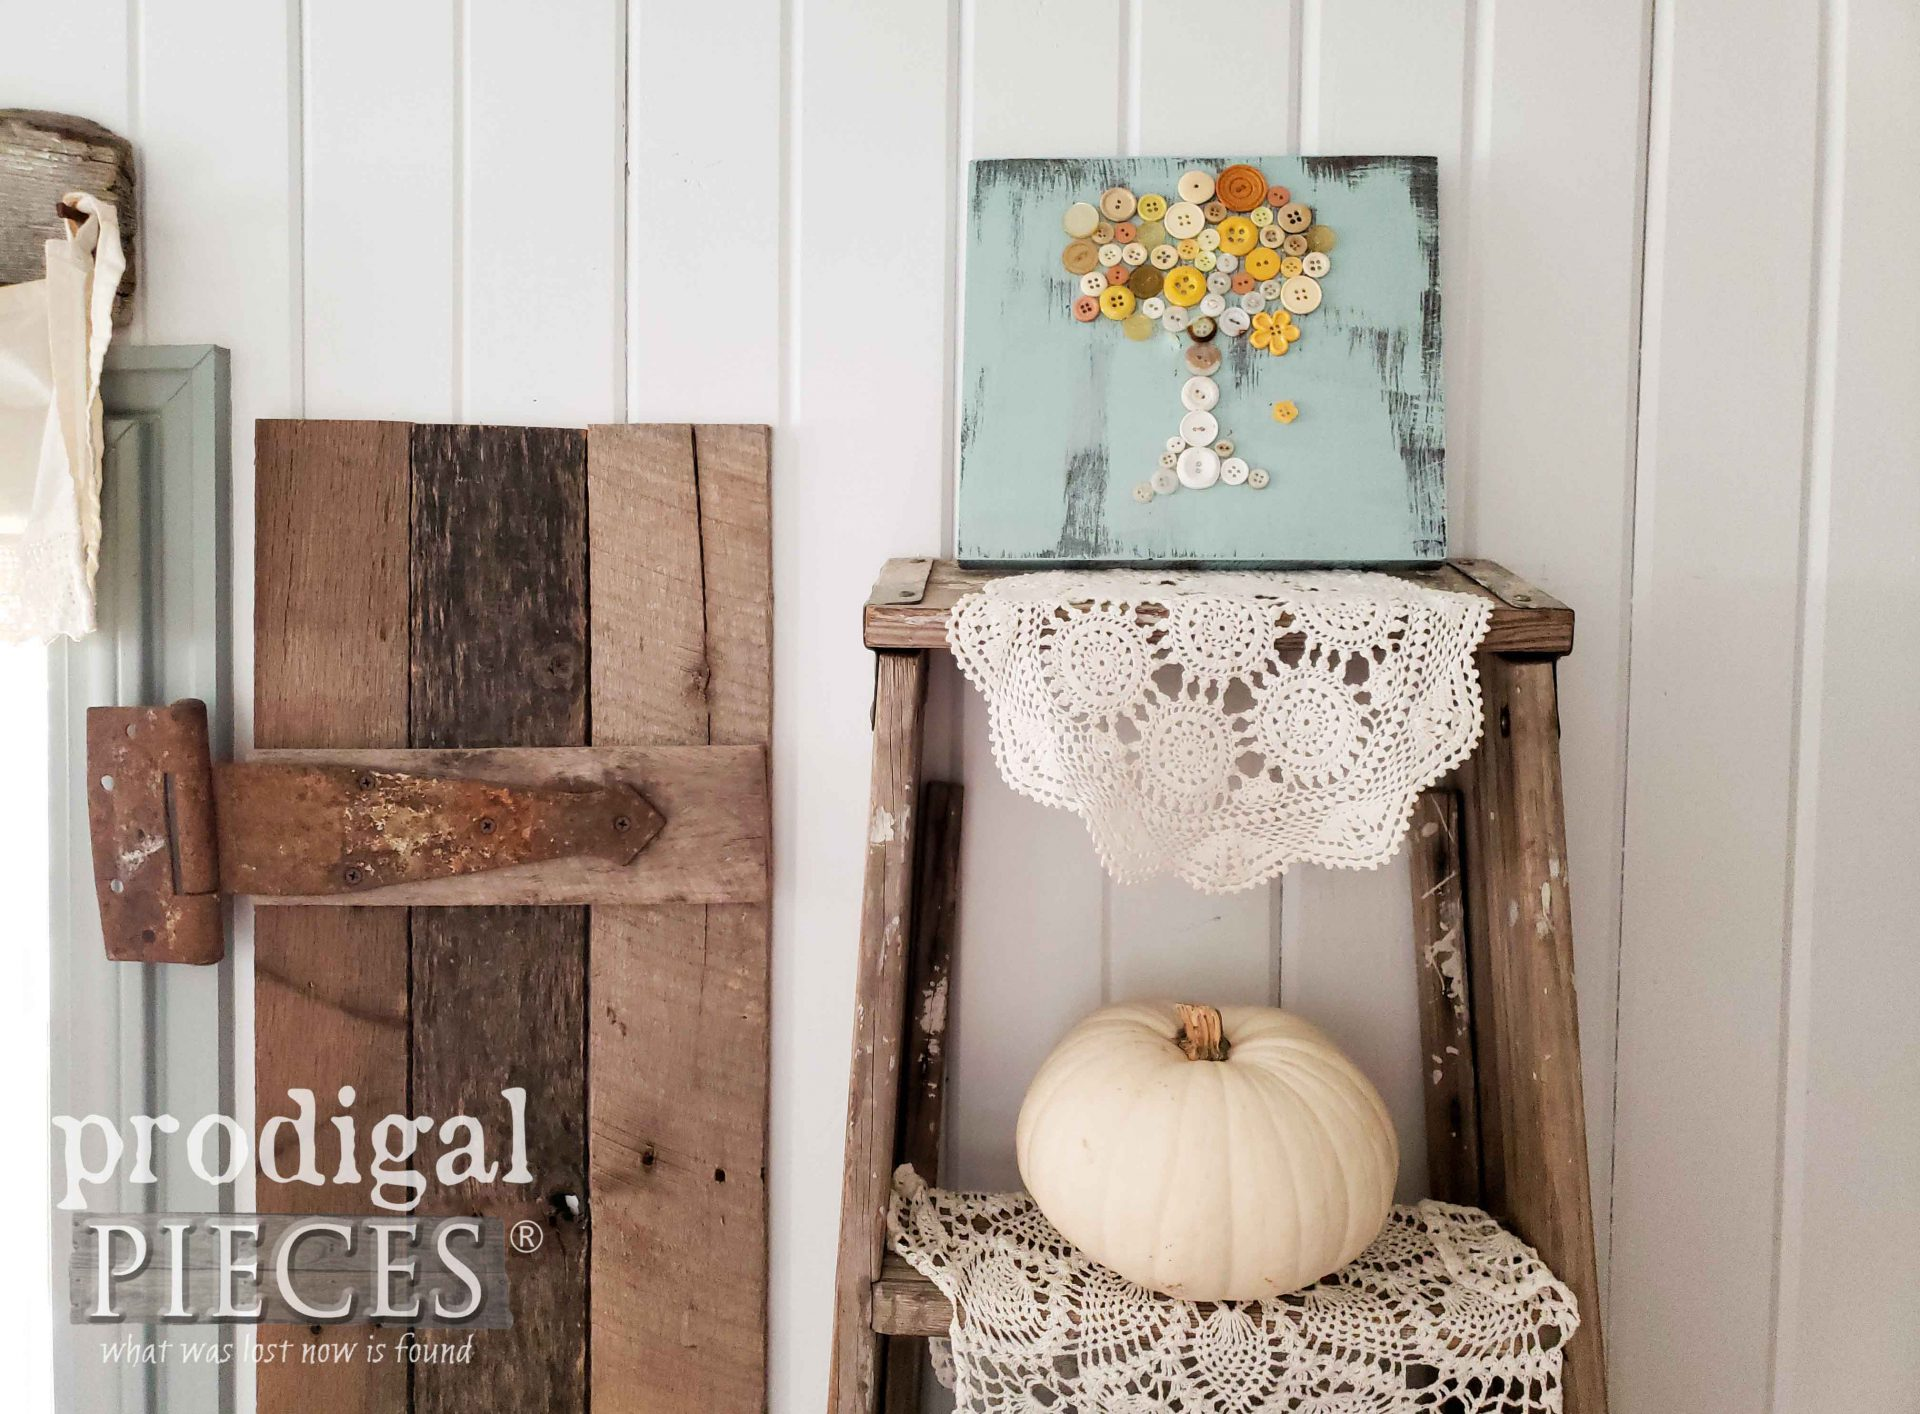 Farmhouse Style Button Art Bird Tree in Autumn by Prodigal Pieces | prodigalpieces.com #prodigalpieces #handmade #art #home #homedecor #farmhouse #kids #crafts